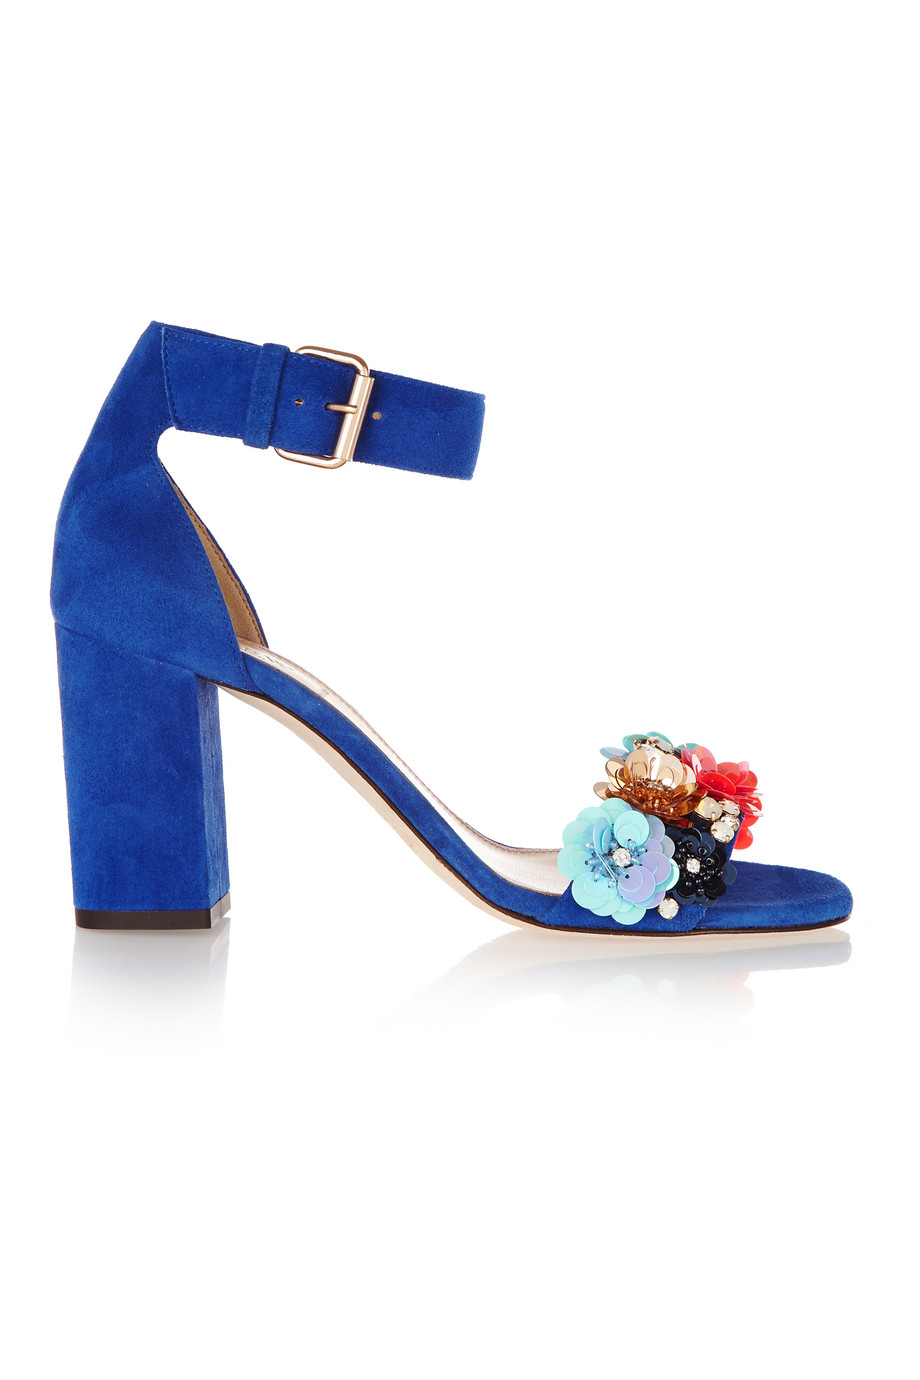 J.Crew Collection Embellished Suede Sandals, Blue, Women's, Size: 5.5